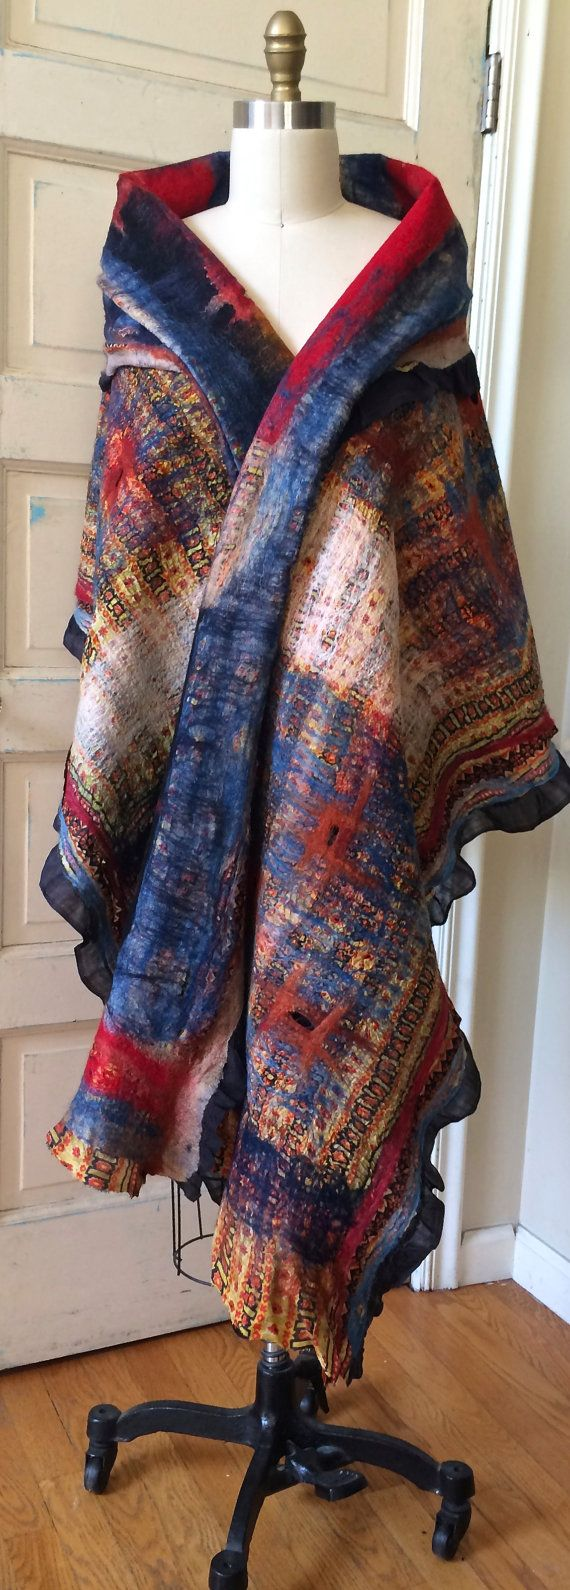 SOLD Nuno Felted Shawl Nuno Felted Scarf by RainasTextileHouse